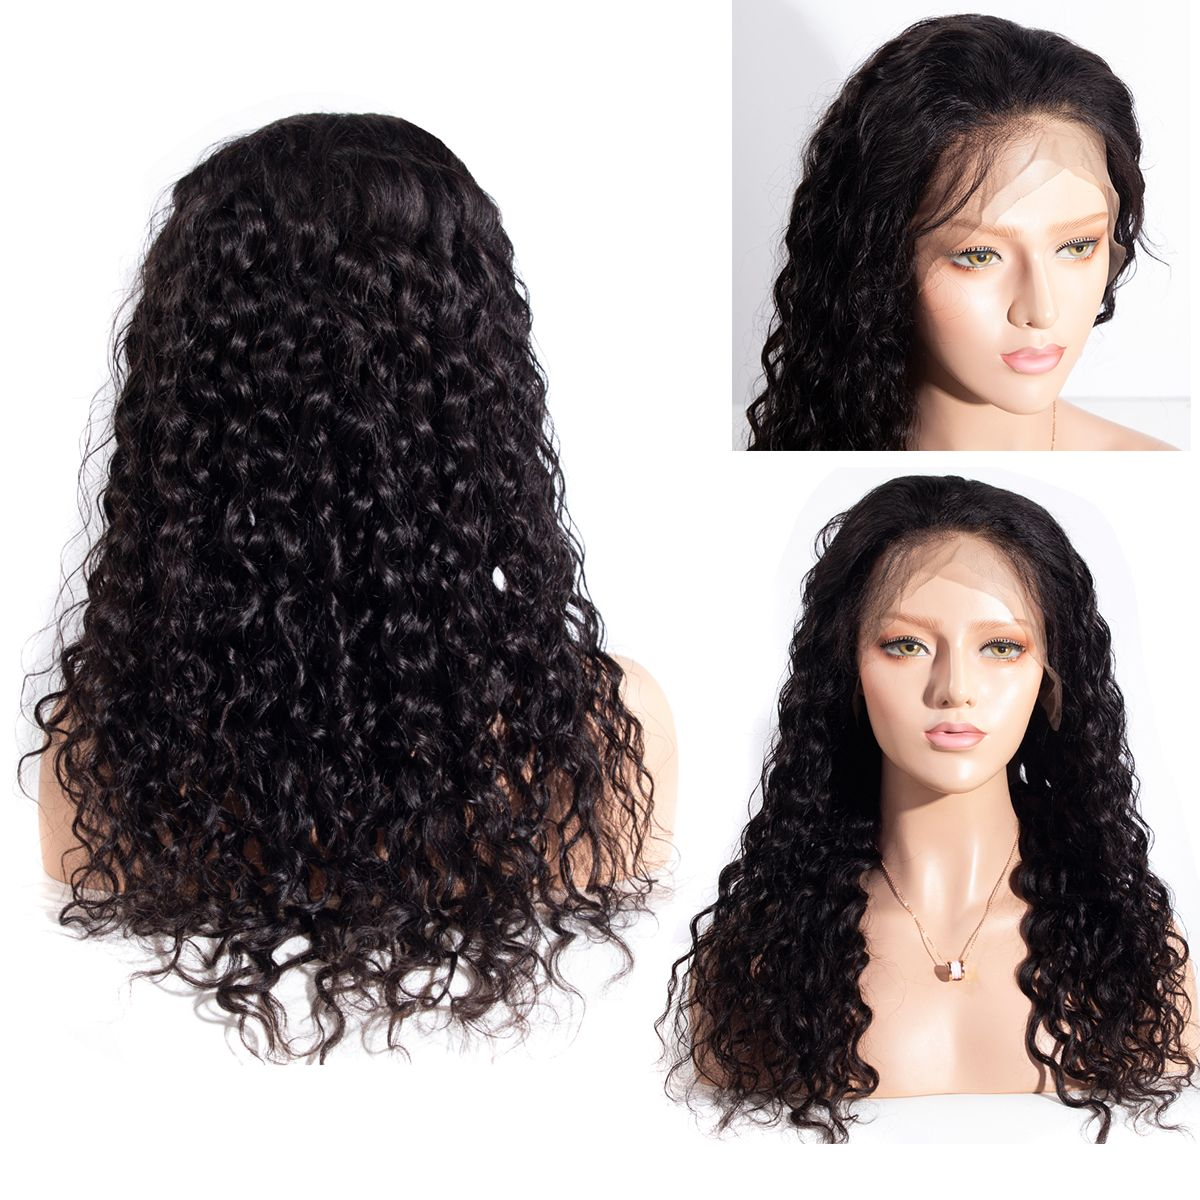 water-wave-lace-front-wig-4